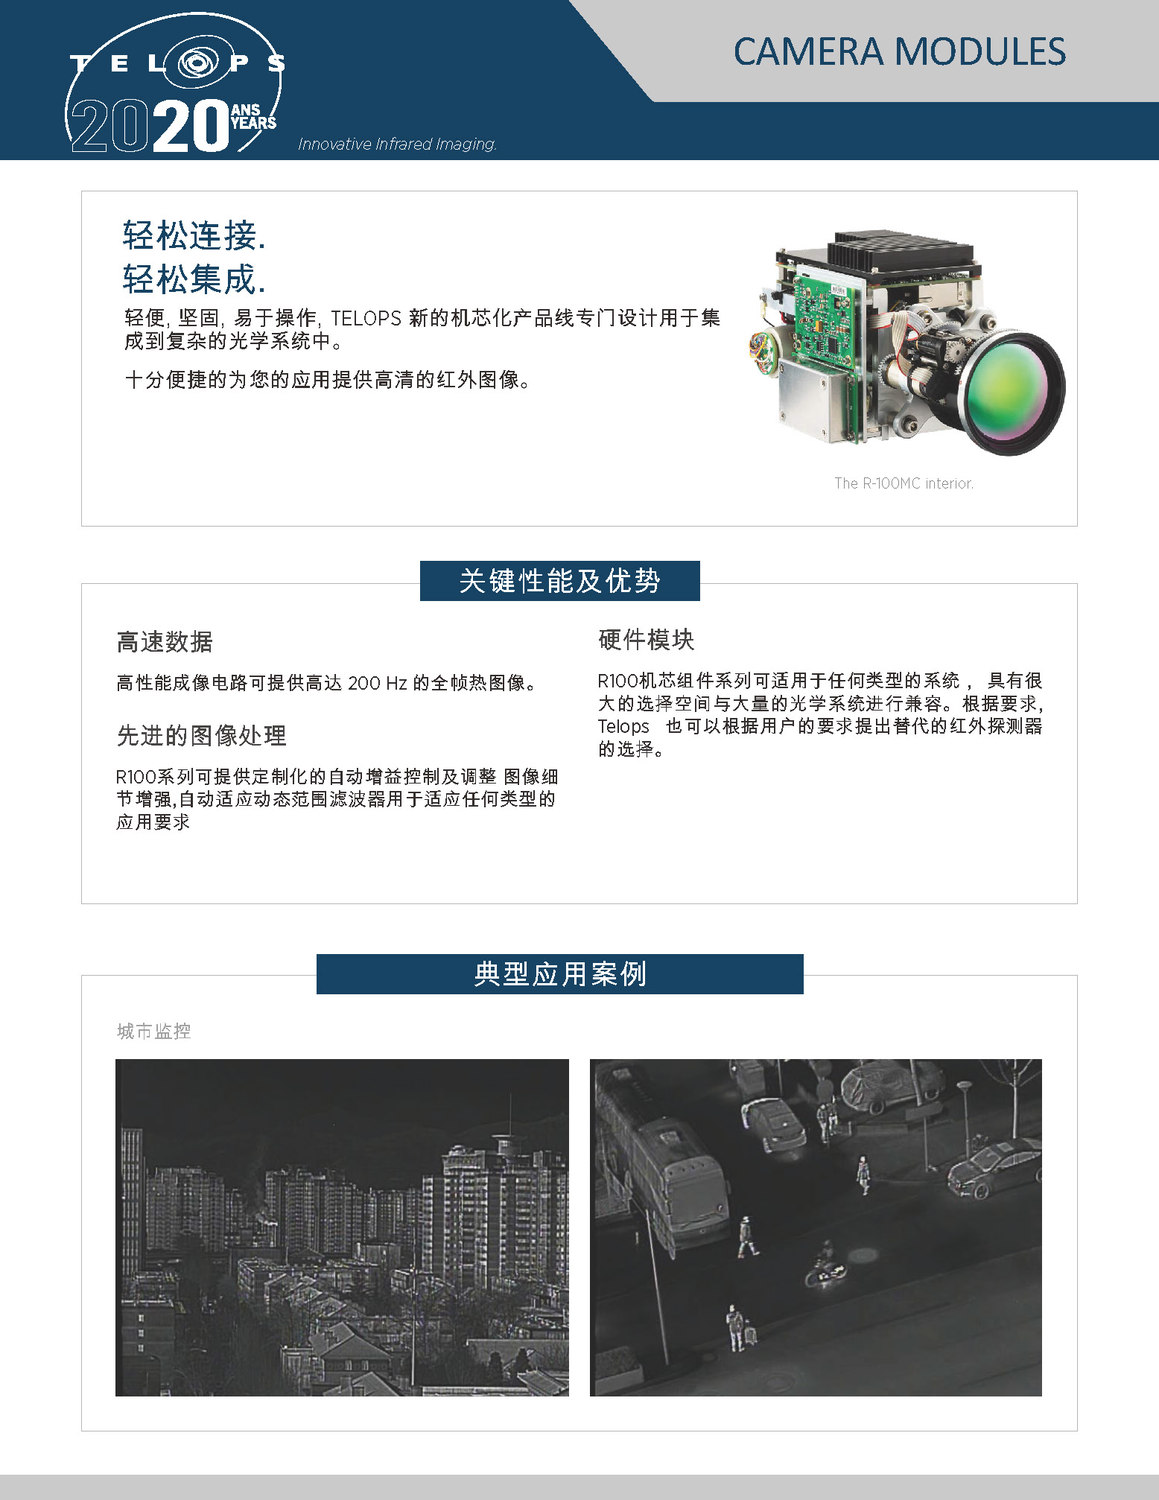 2020 Camera Modules Family - CHINA_页面_1.jpg